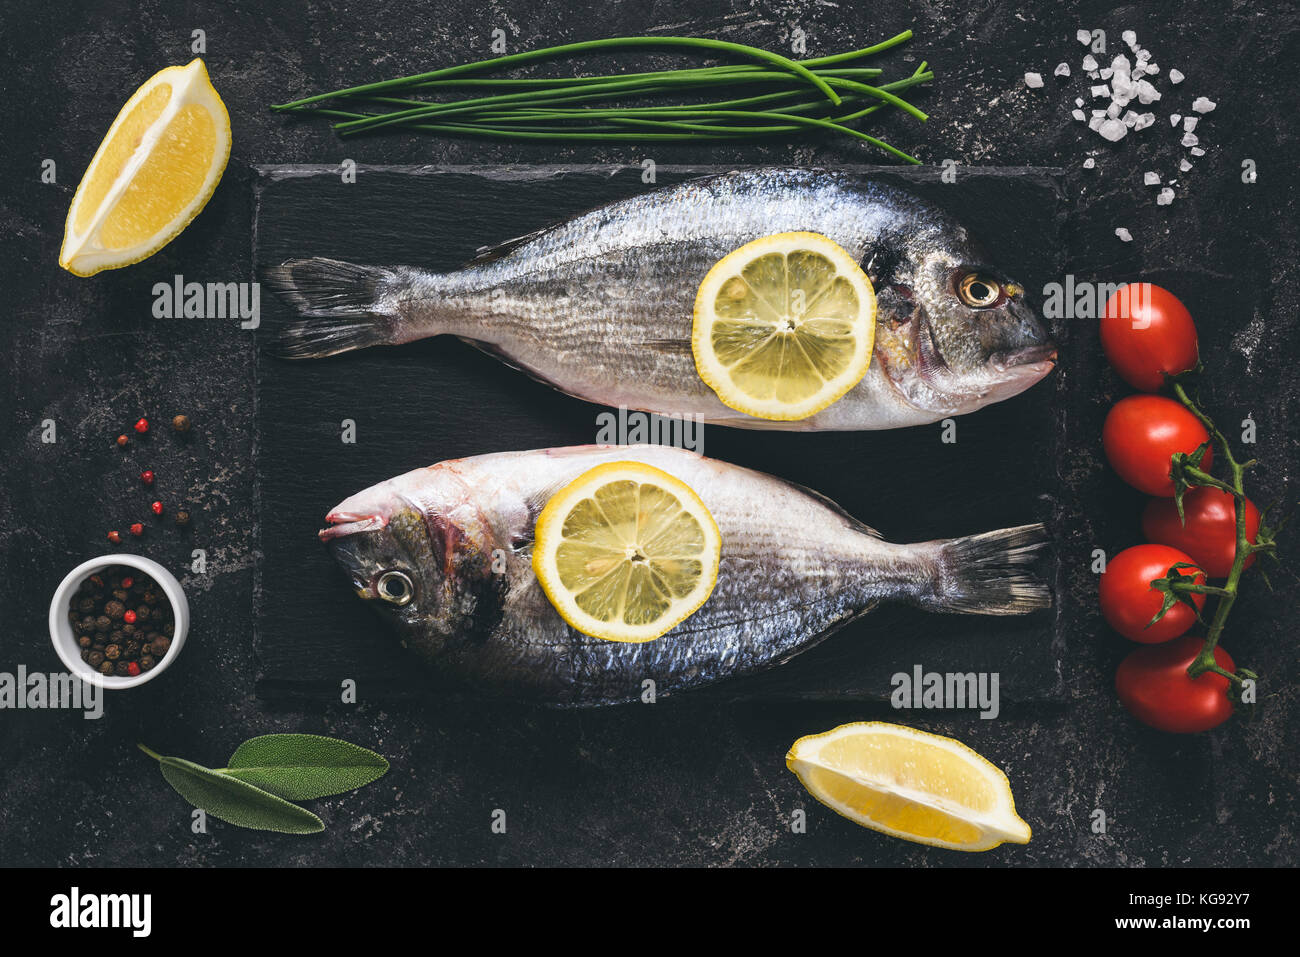 Fresh sea beam or dorado fish, lemon, herbs, spices and vegetables on black stone slate background. Top view. Fresh - Stock Image